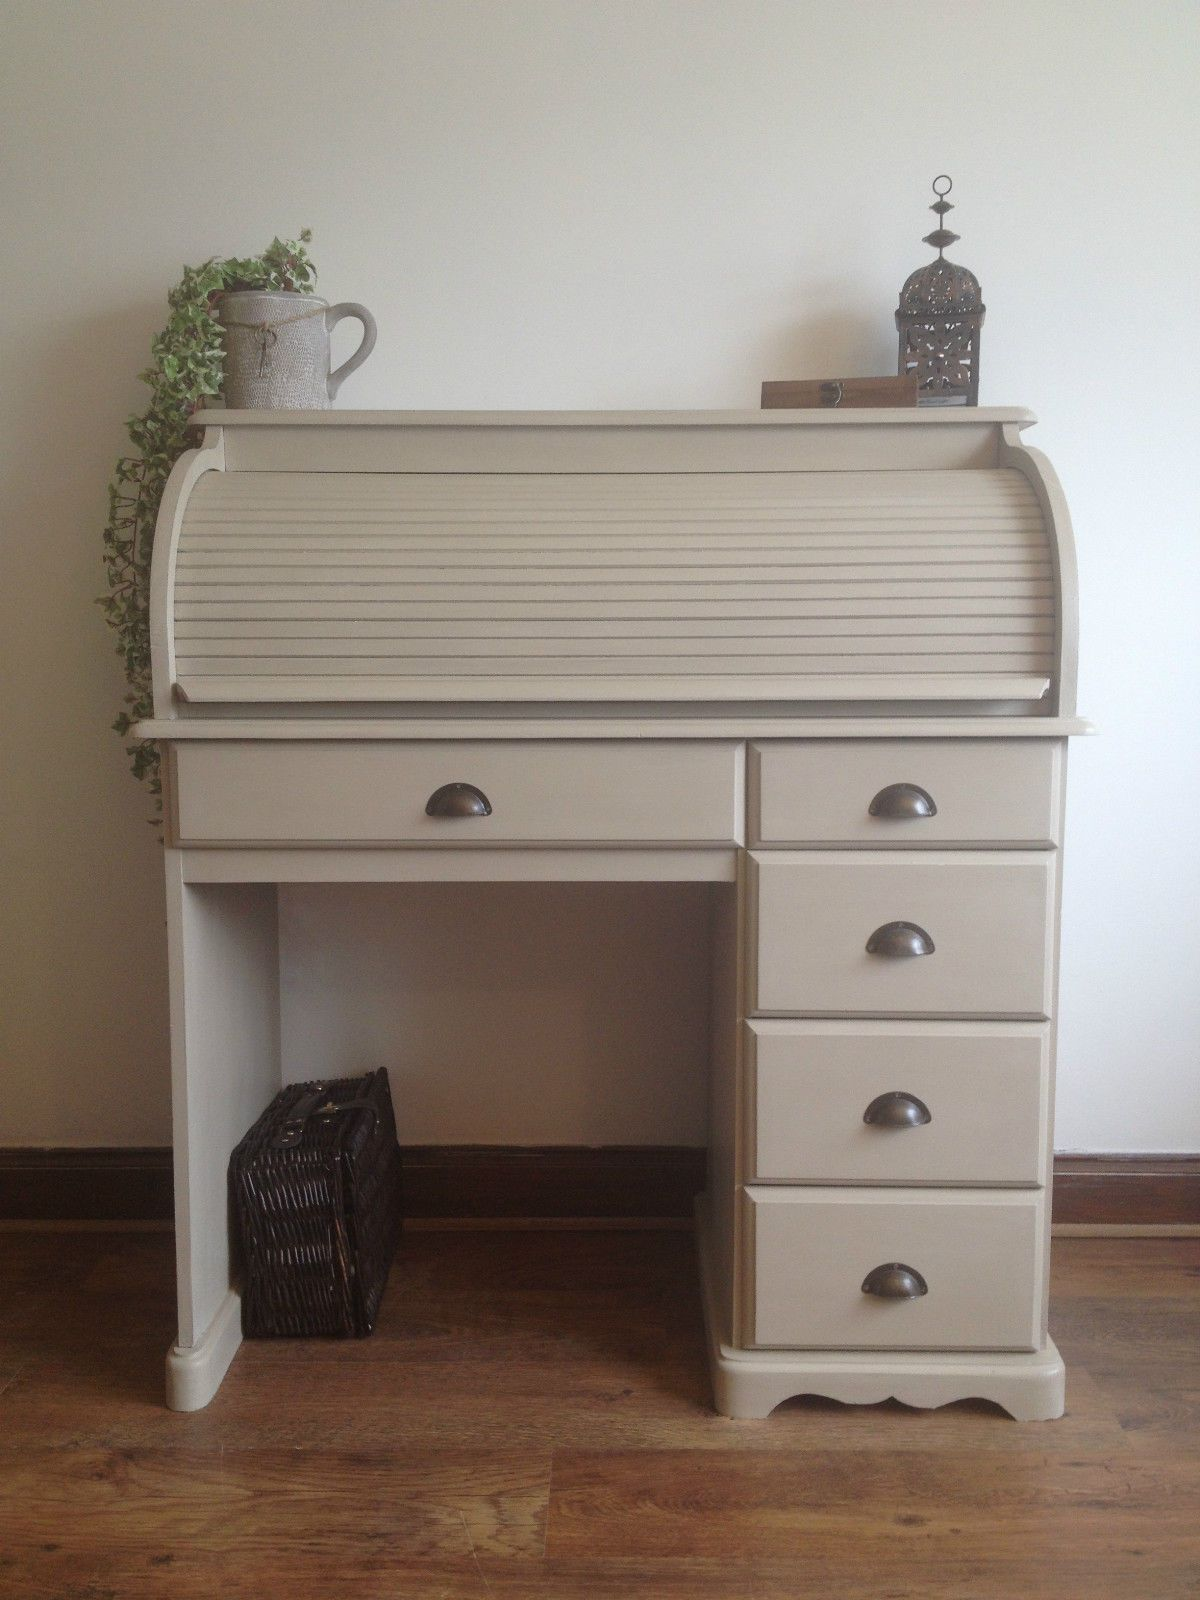 Stunning Shabby Chic Pine Roll Top Desk Painted Annie Sloan Country Grey Ebay Shabby Chic Decor Bedroom Shabby Chic Curtains Shabby Chic Room